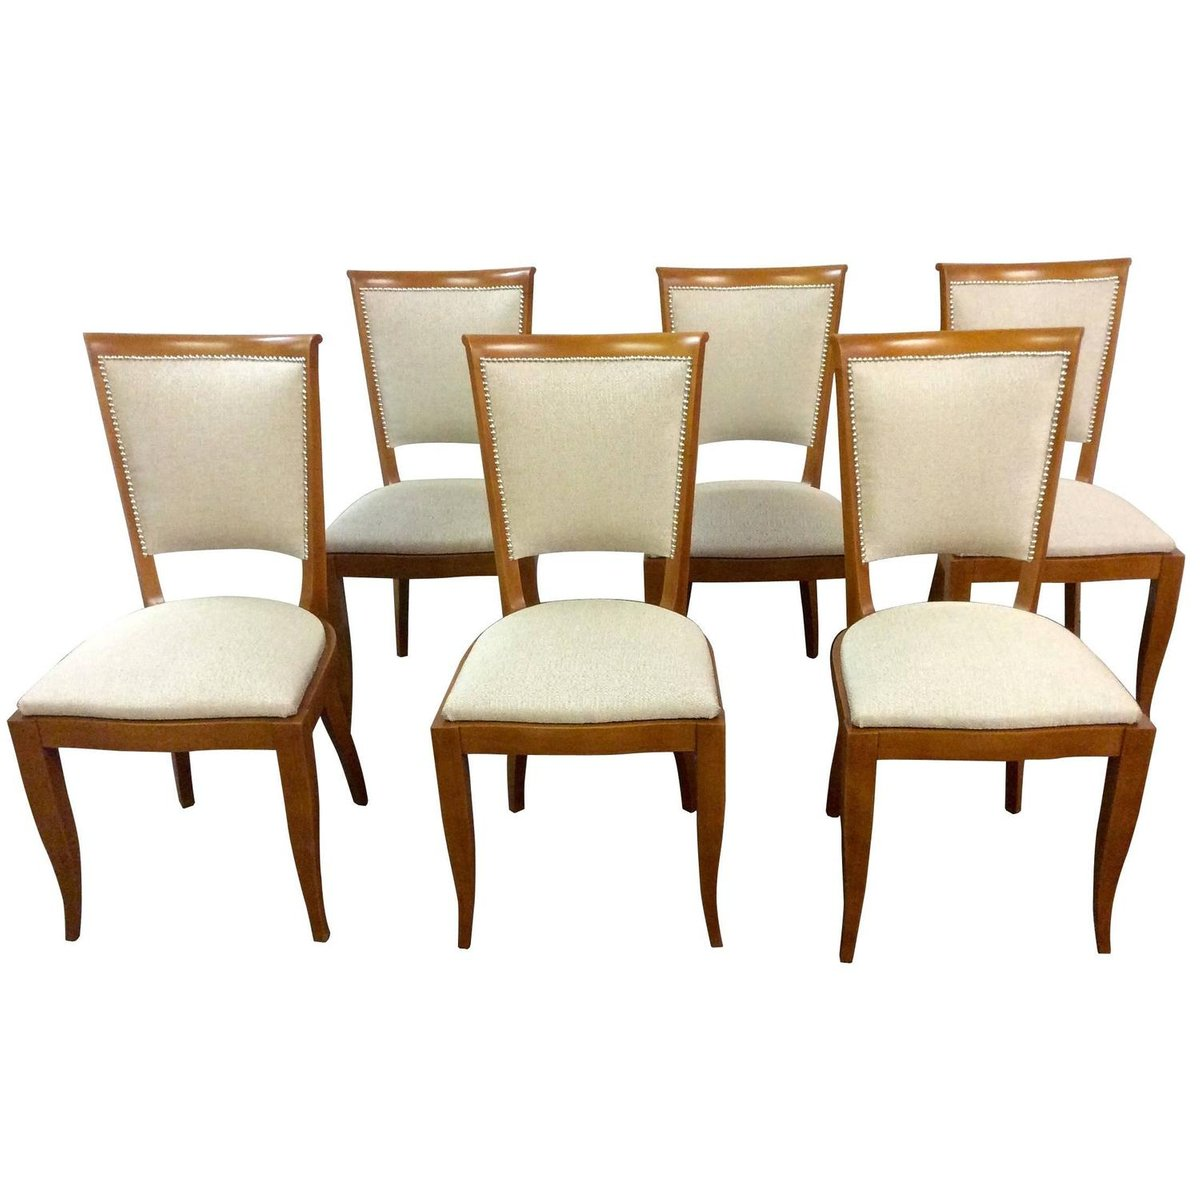 Art deco french dining chairs 1930s set of 6